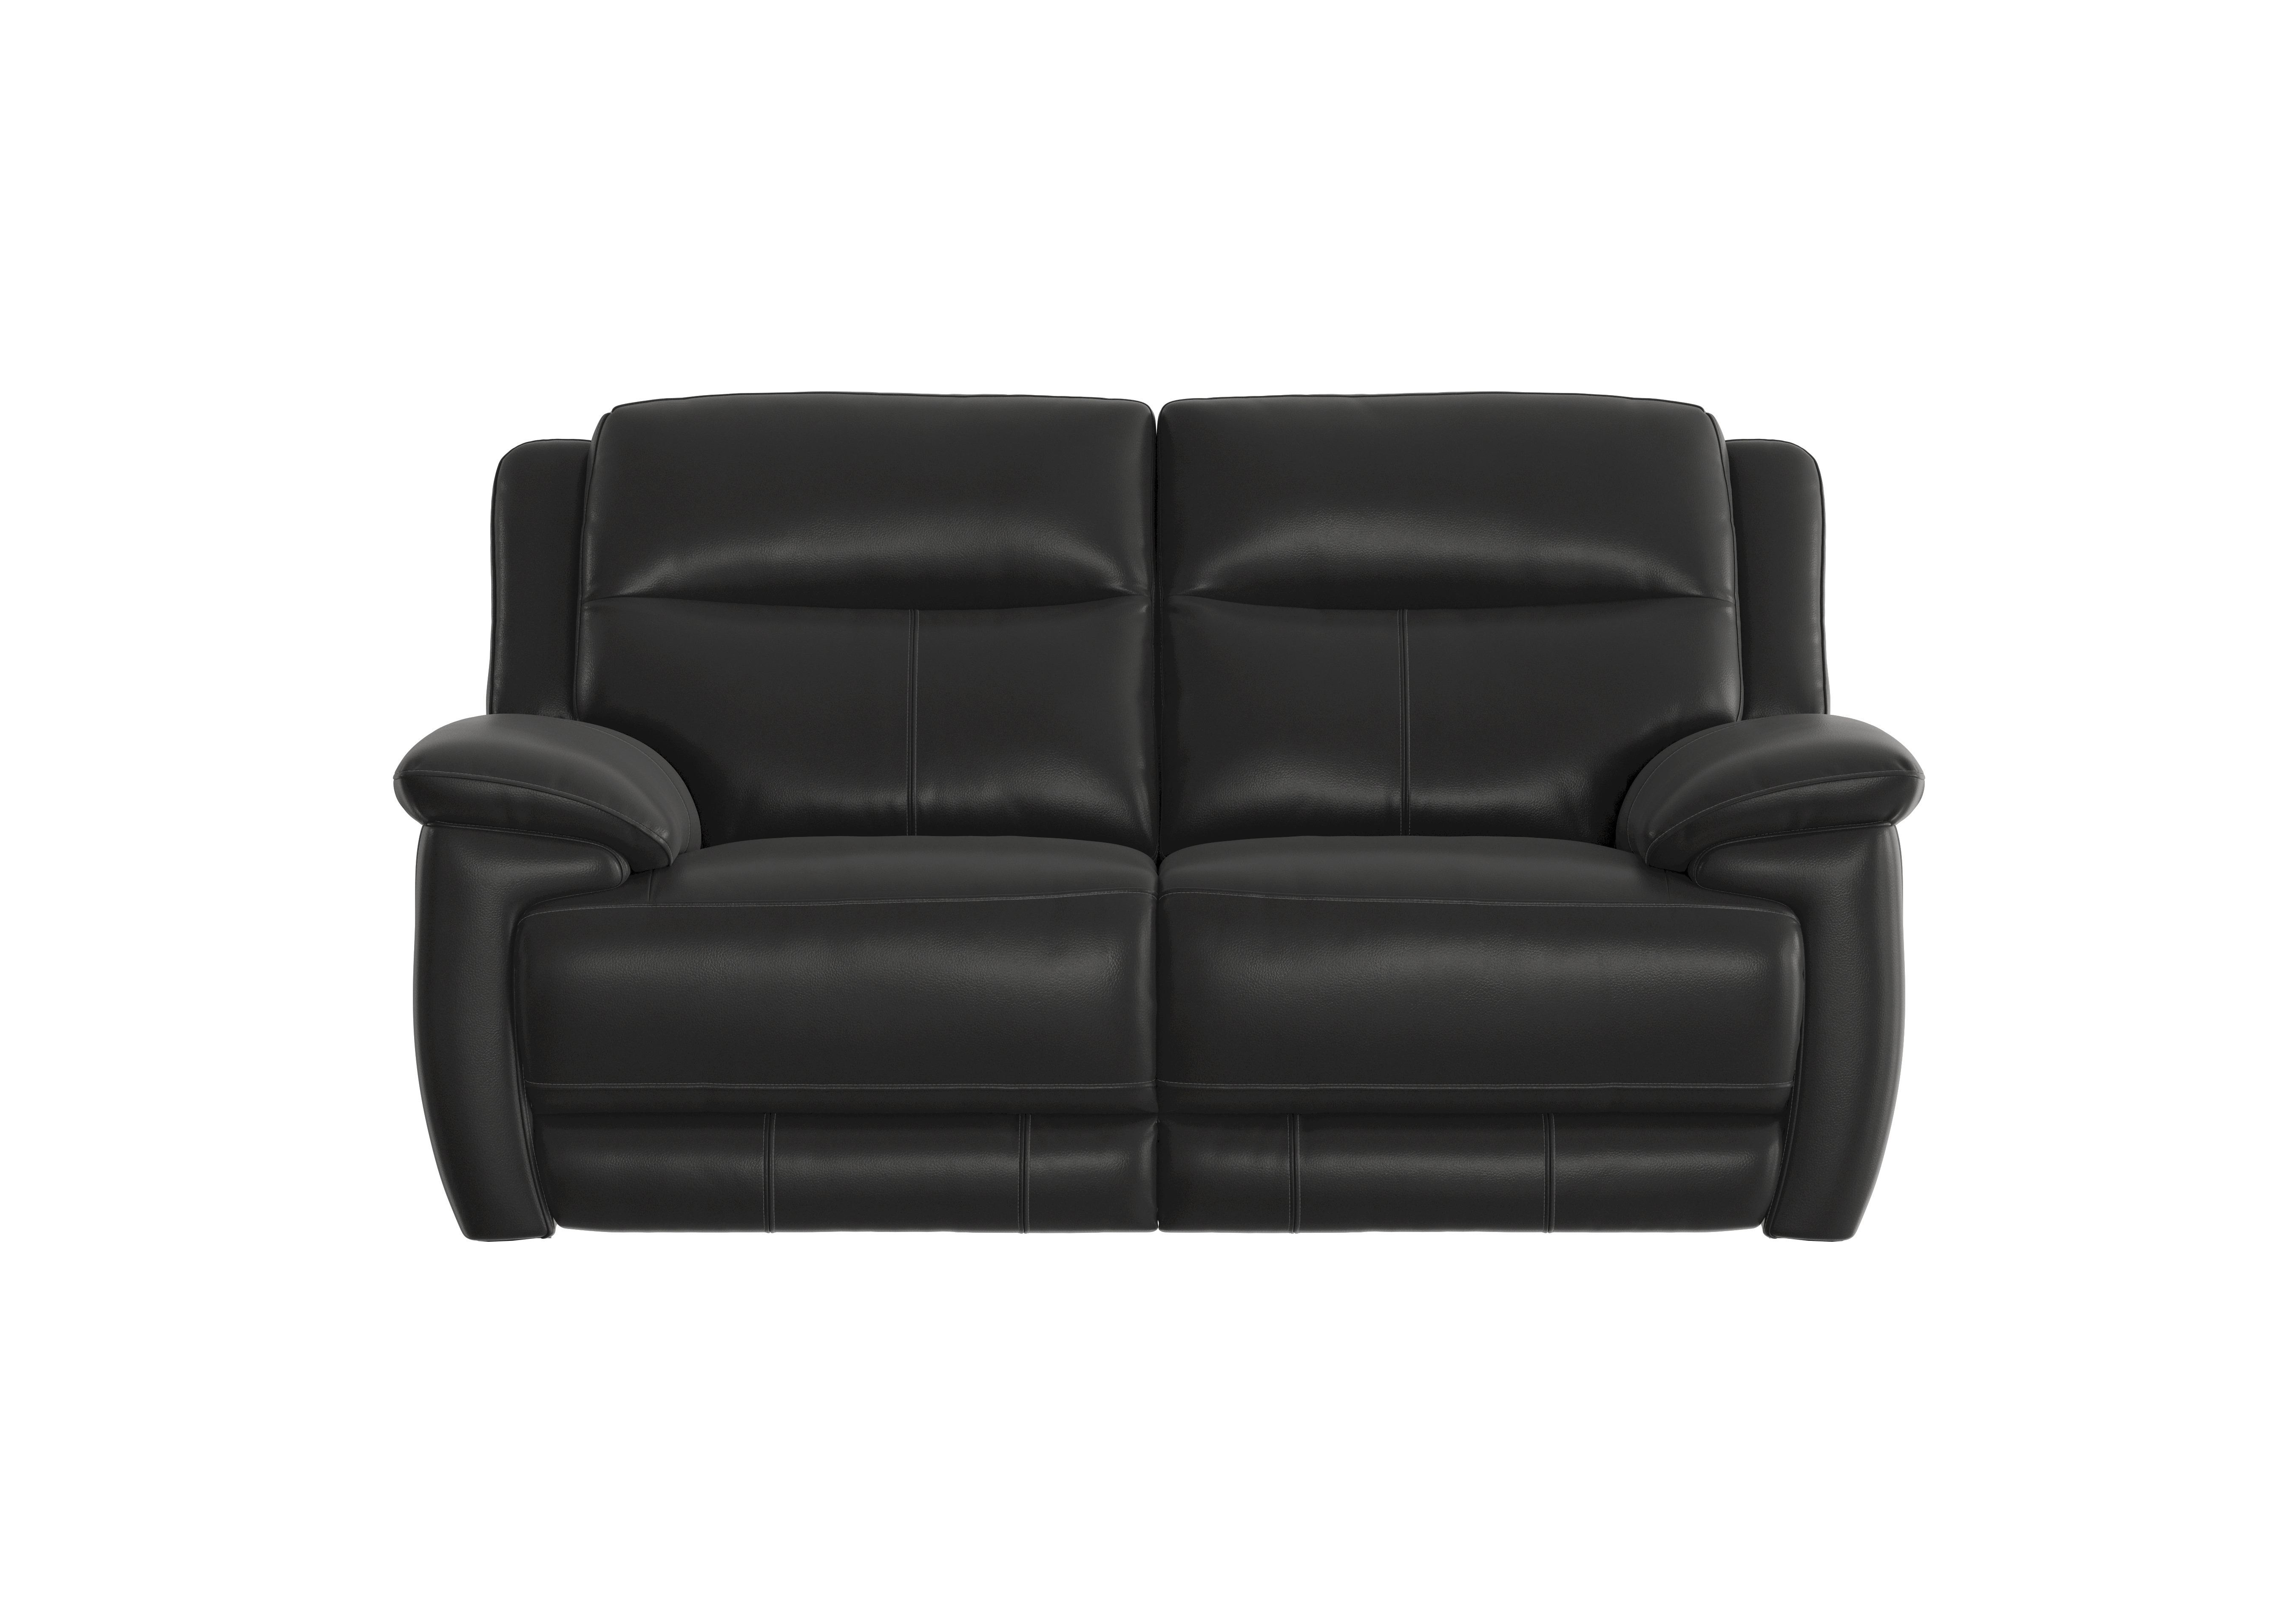 Corsetta 2 Seater Recliner Sofa Touch 2 Seater Leather Recliner Sofa - World Of Leather